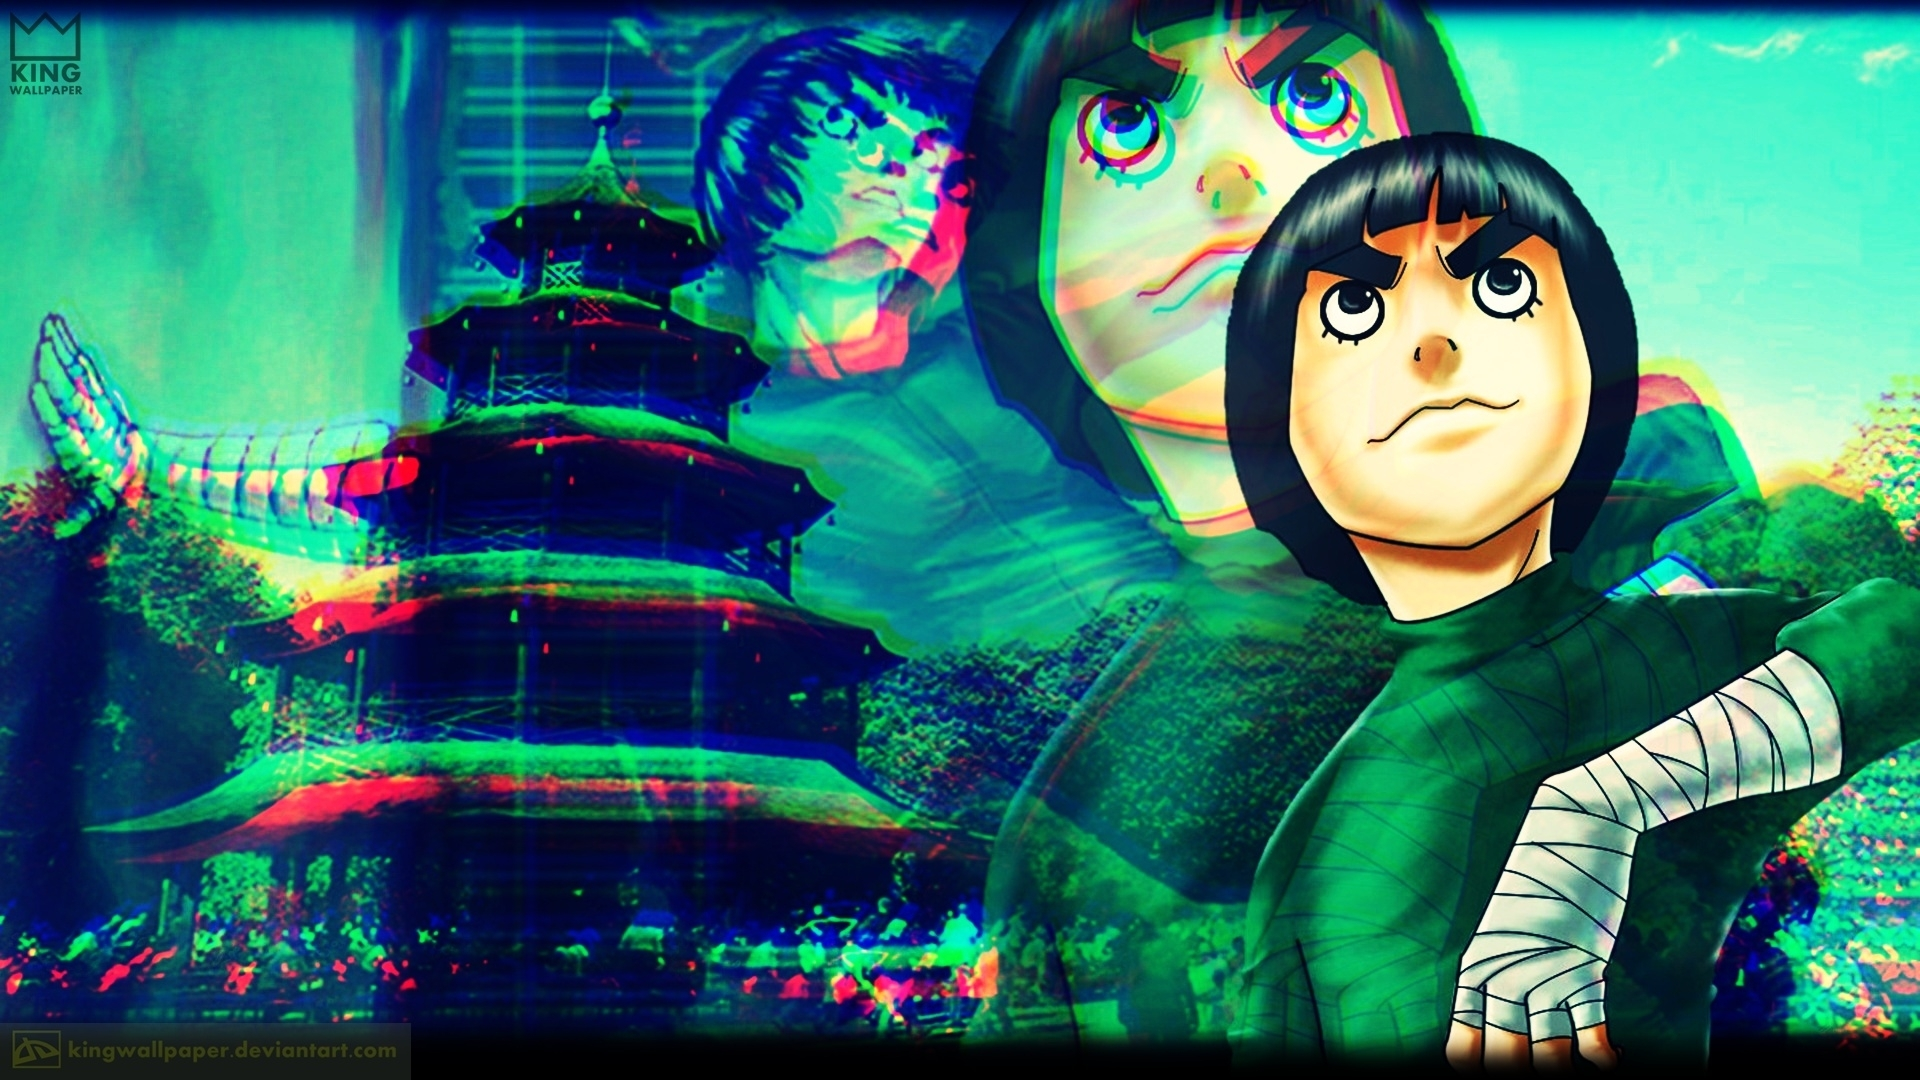 rock lee fond d'écran hd